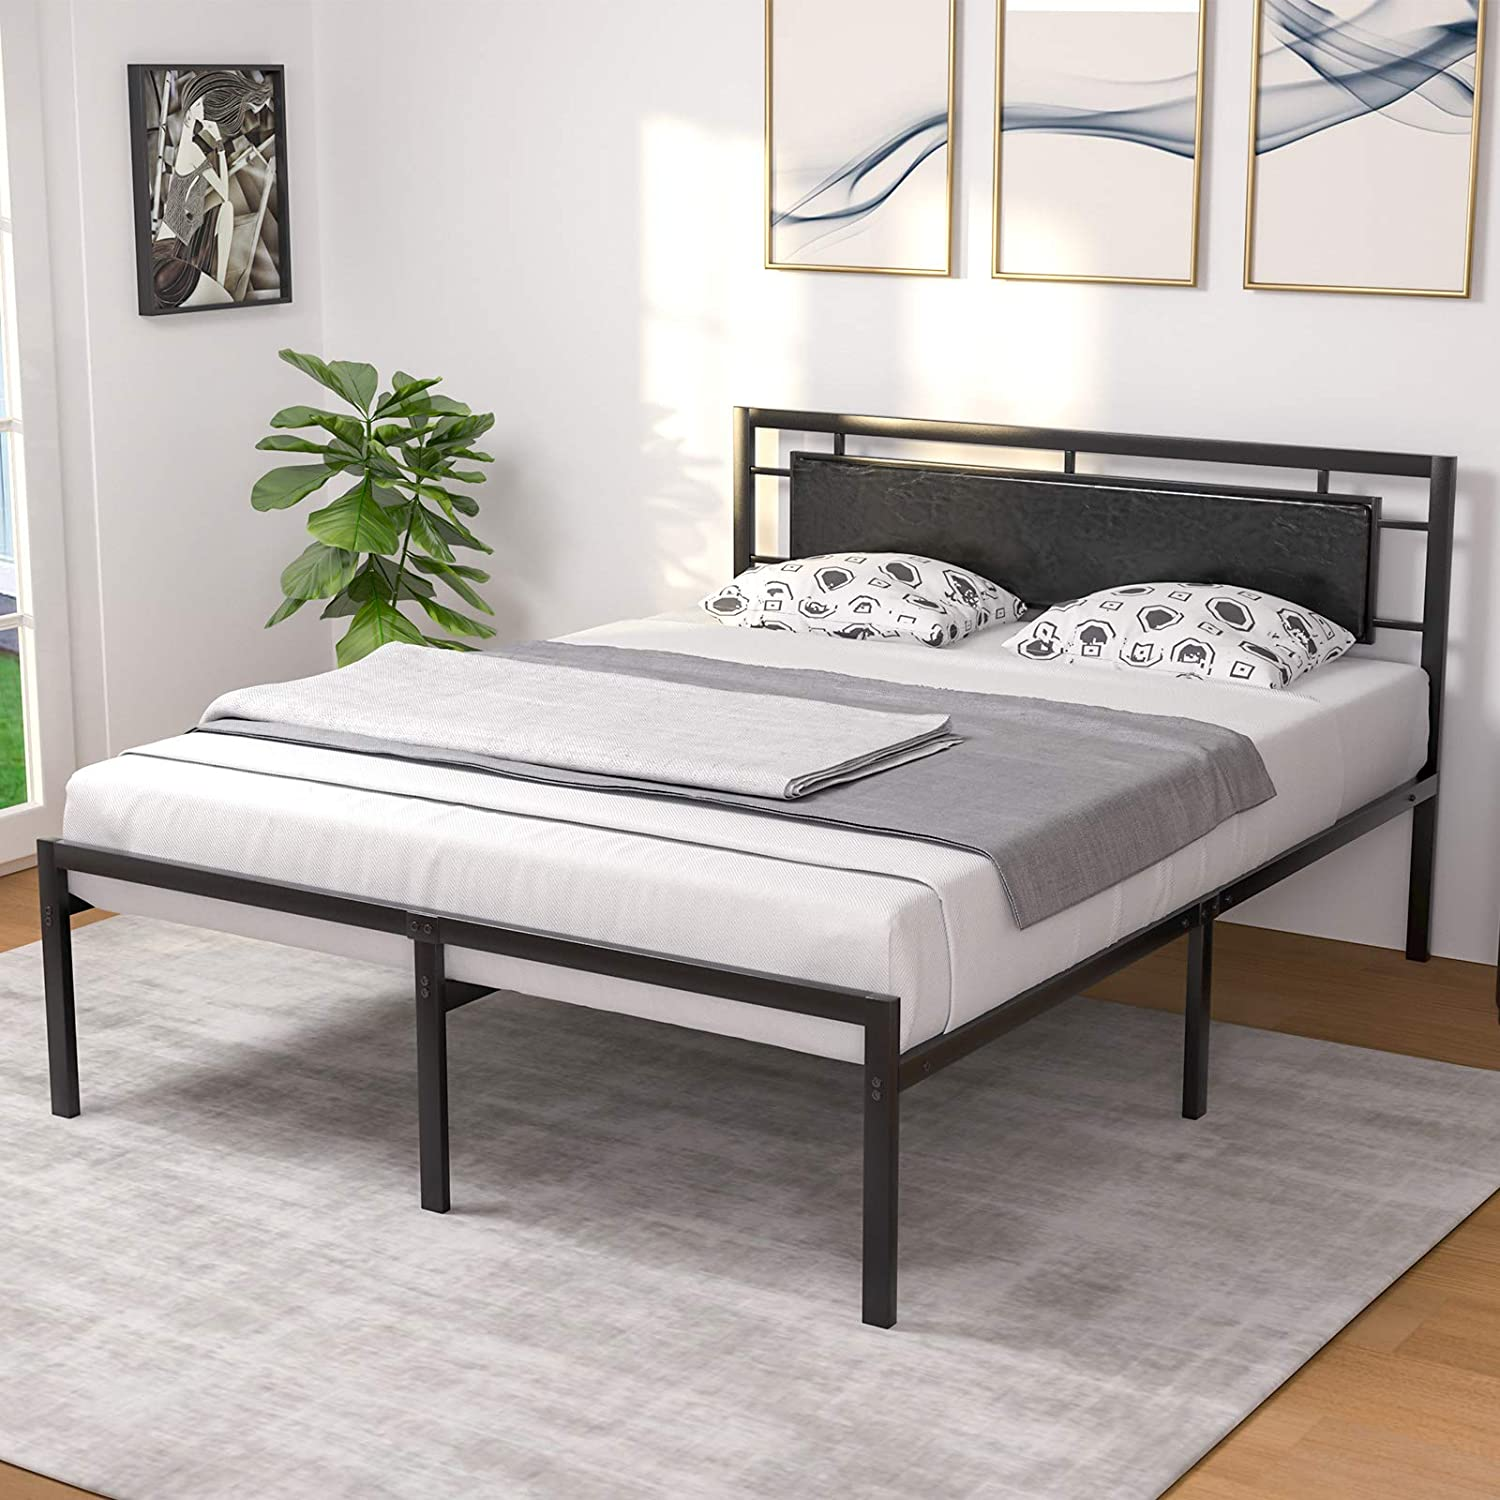 Mecor Queen Bed Frame With Black Faux Leather Headboard Vintage Metal Platform Mattress Foundation Strong Metal Slats Support No Box Spring Needed Black Queen Walmart Com Walmart Com